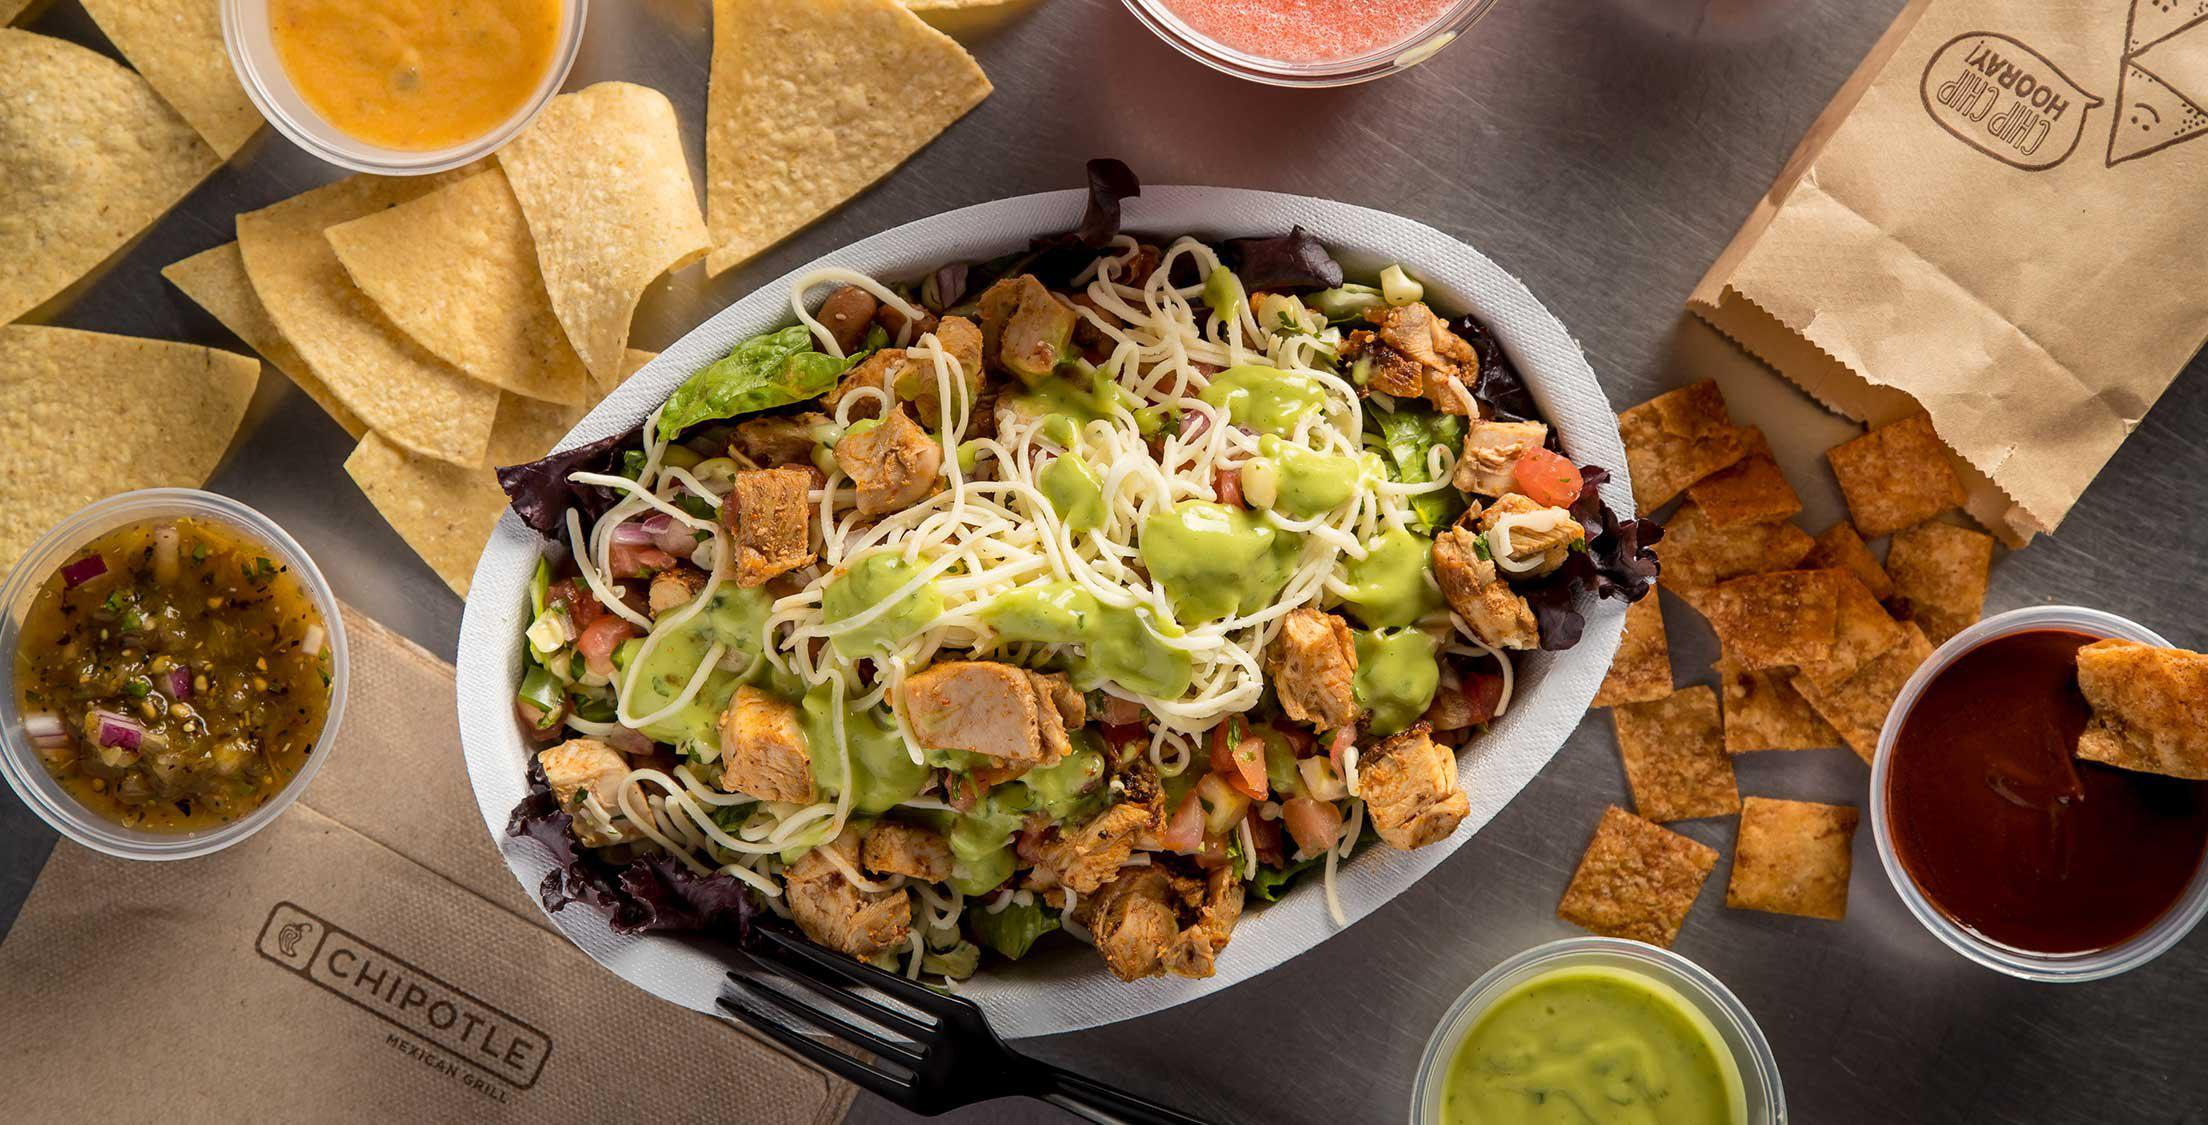 how-to-redeem-your-bogo-offer-with-chipotle-x-unidays